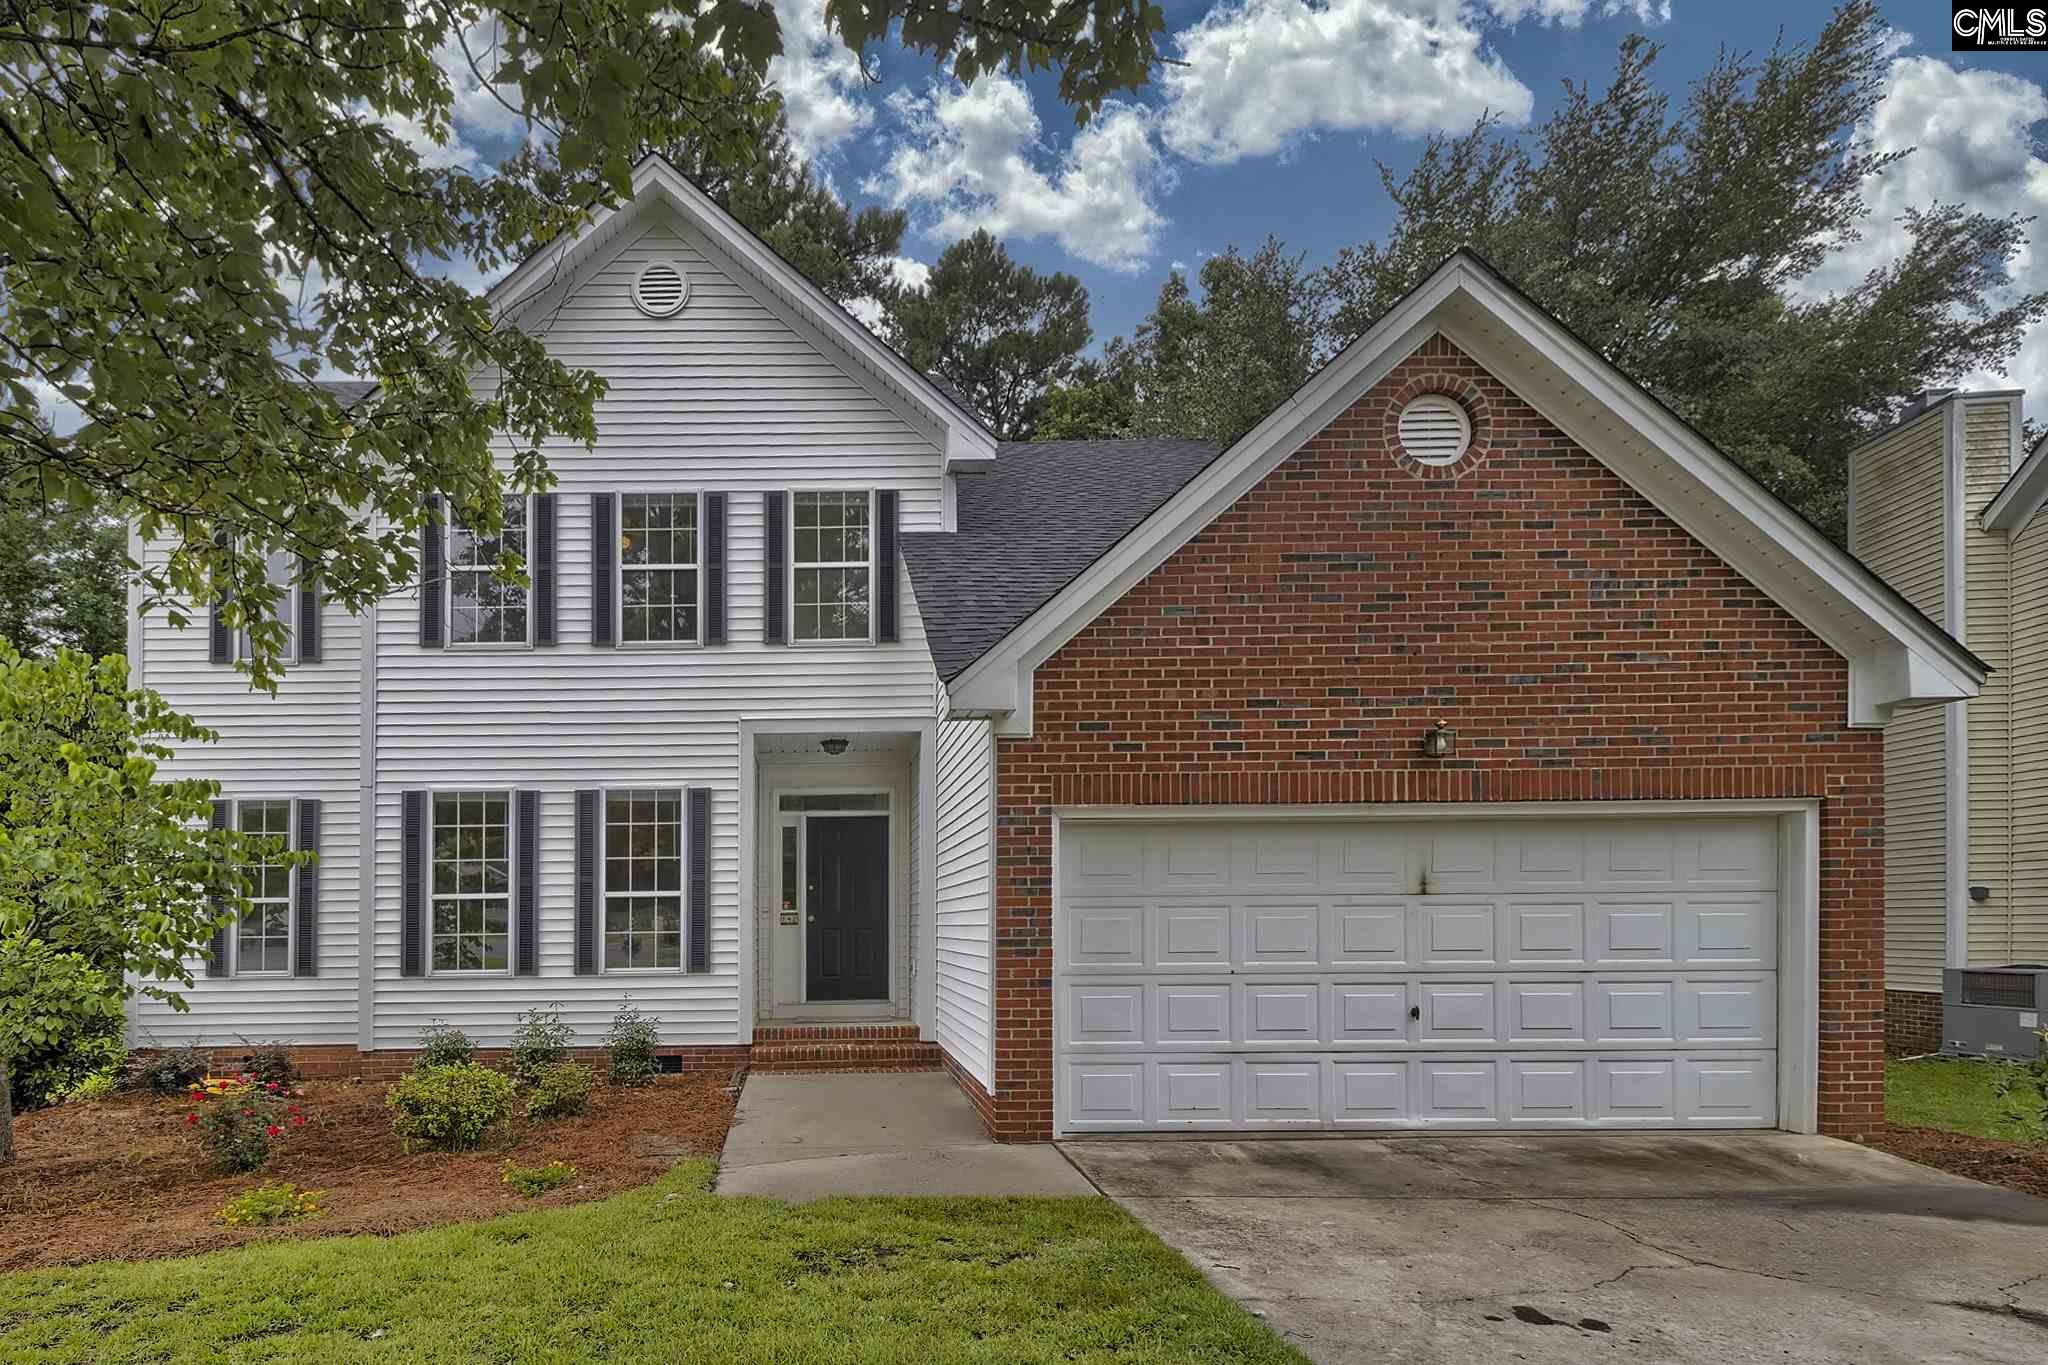 142 Hunters Ridge Lexington, SC 29072